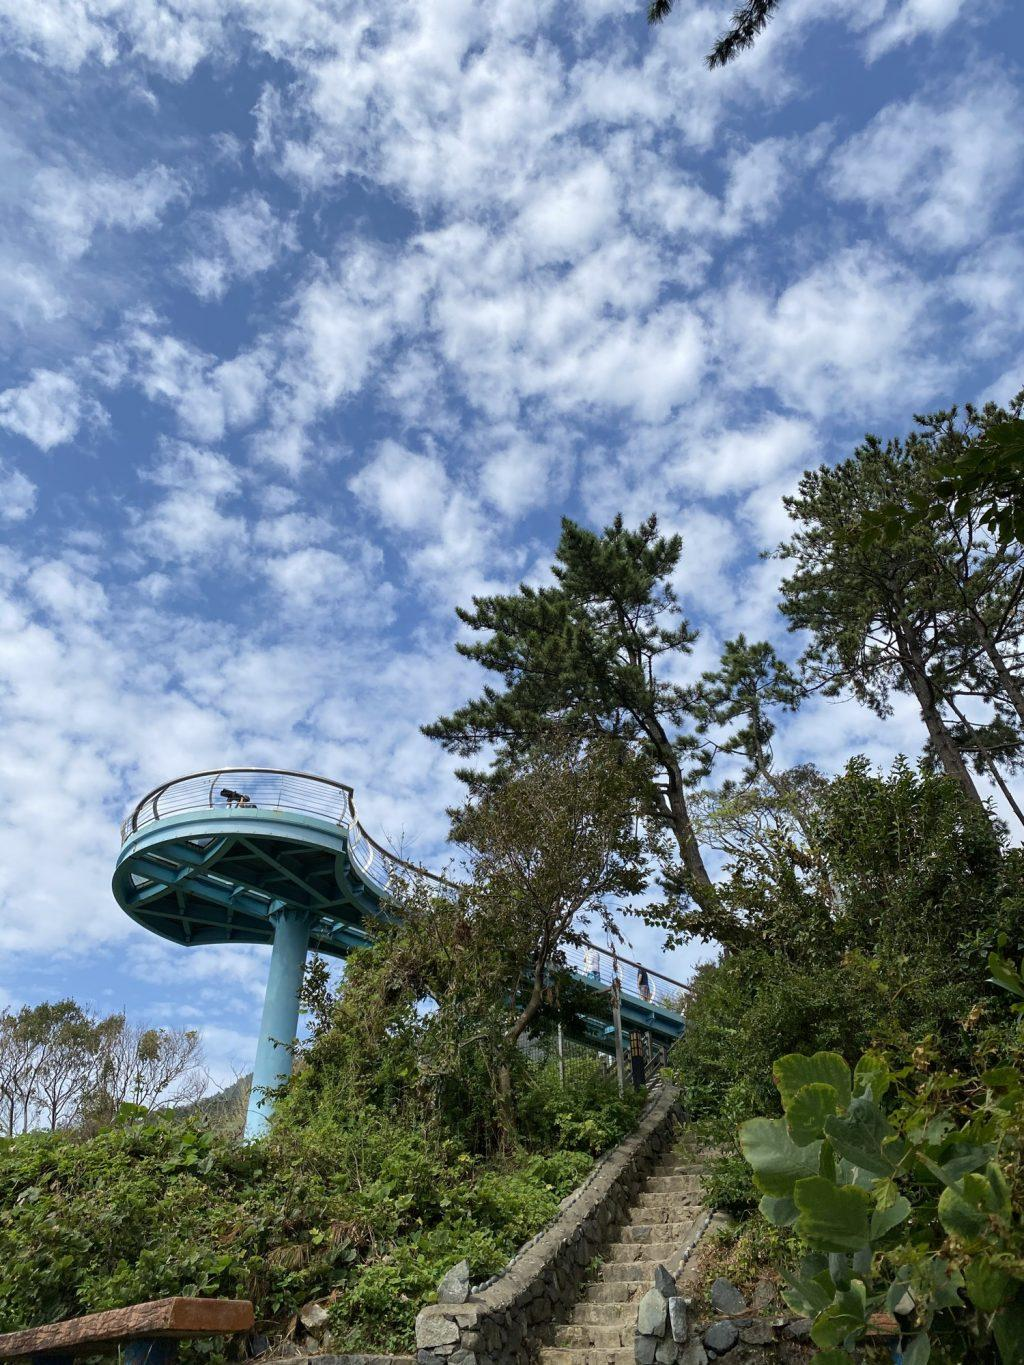 The Jeoryeong Coastal Walk provides hikers with a place to view the ocean and take pictures Oct. 4. The high skywalk against the beautiful sky and sparkling ocean provided a great view.